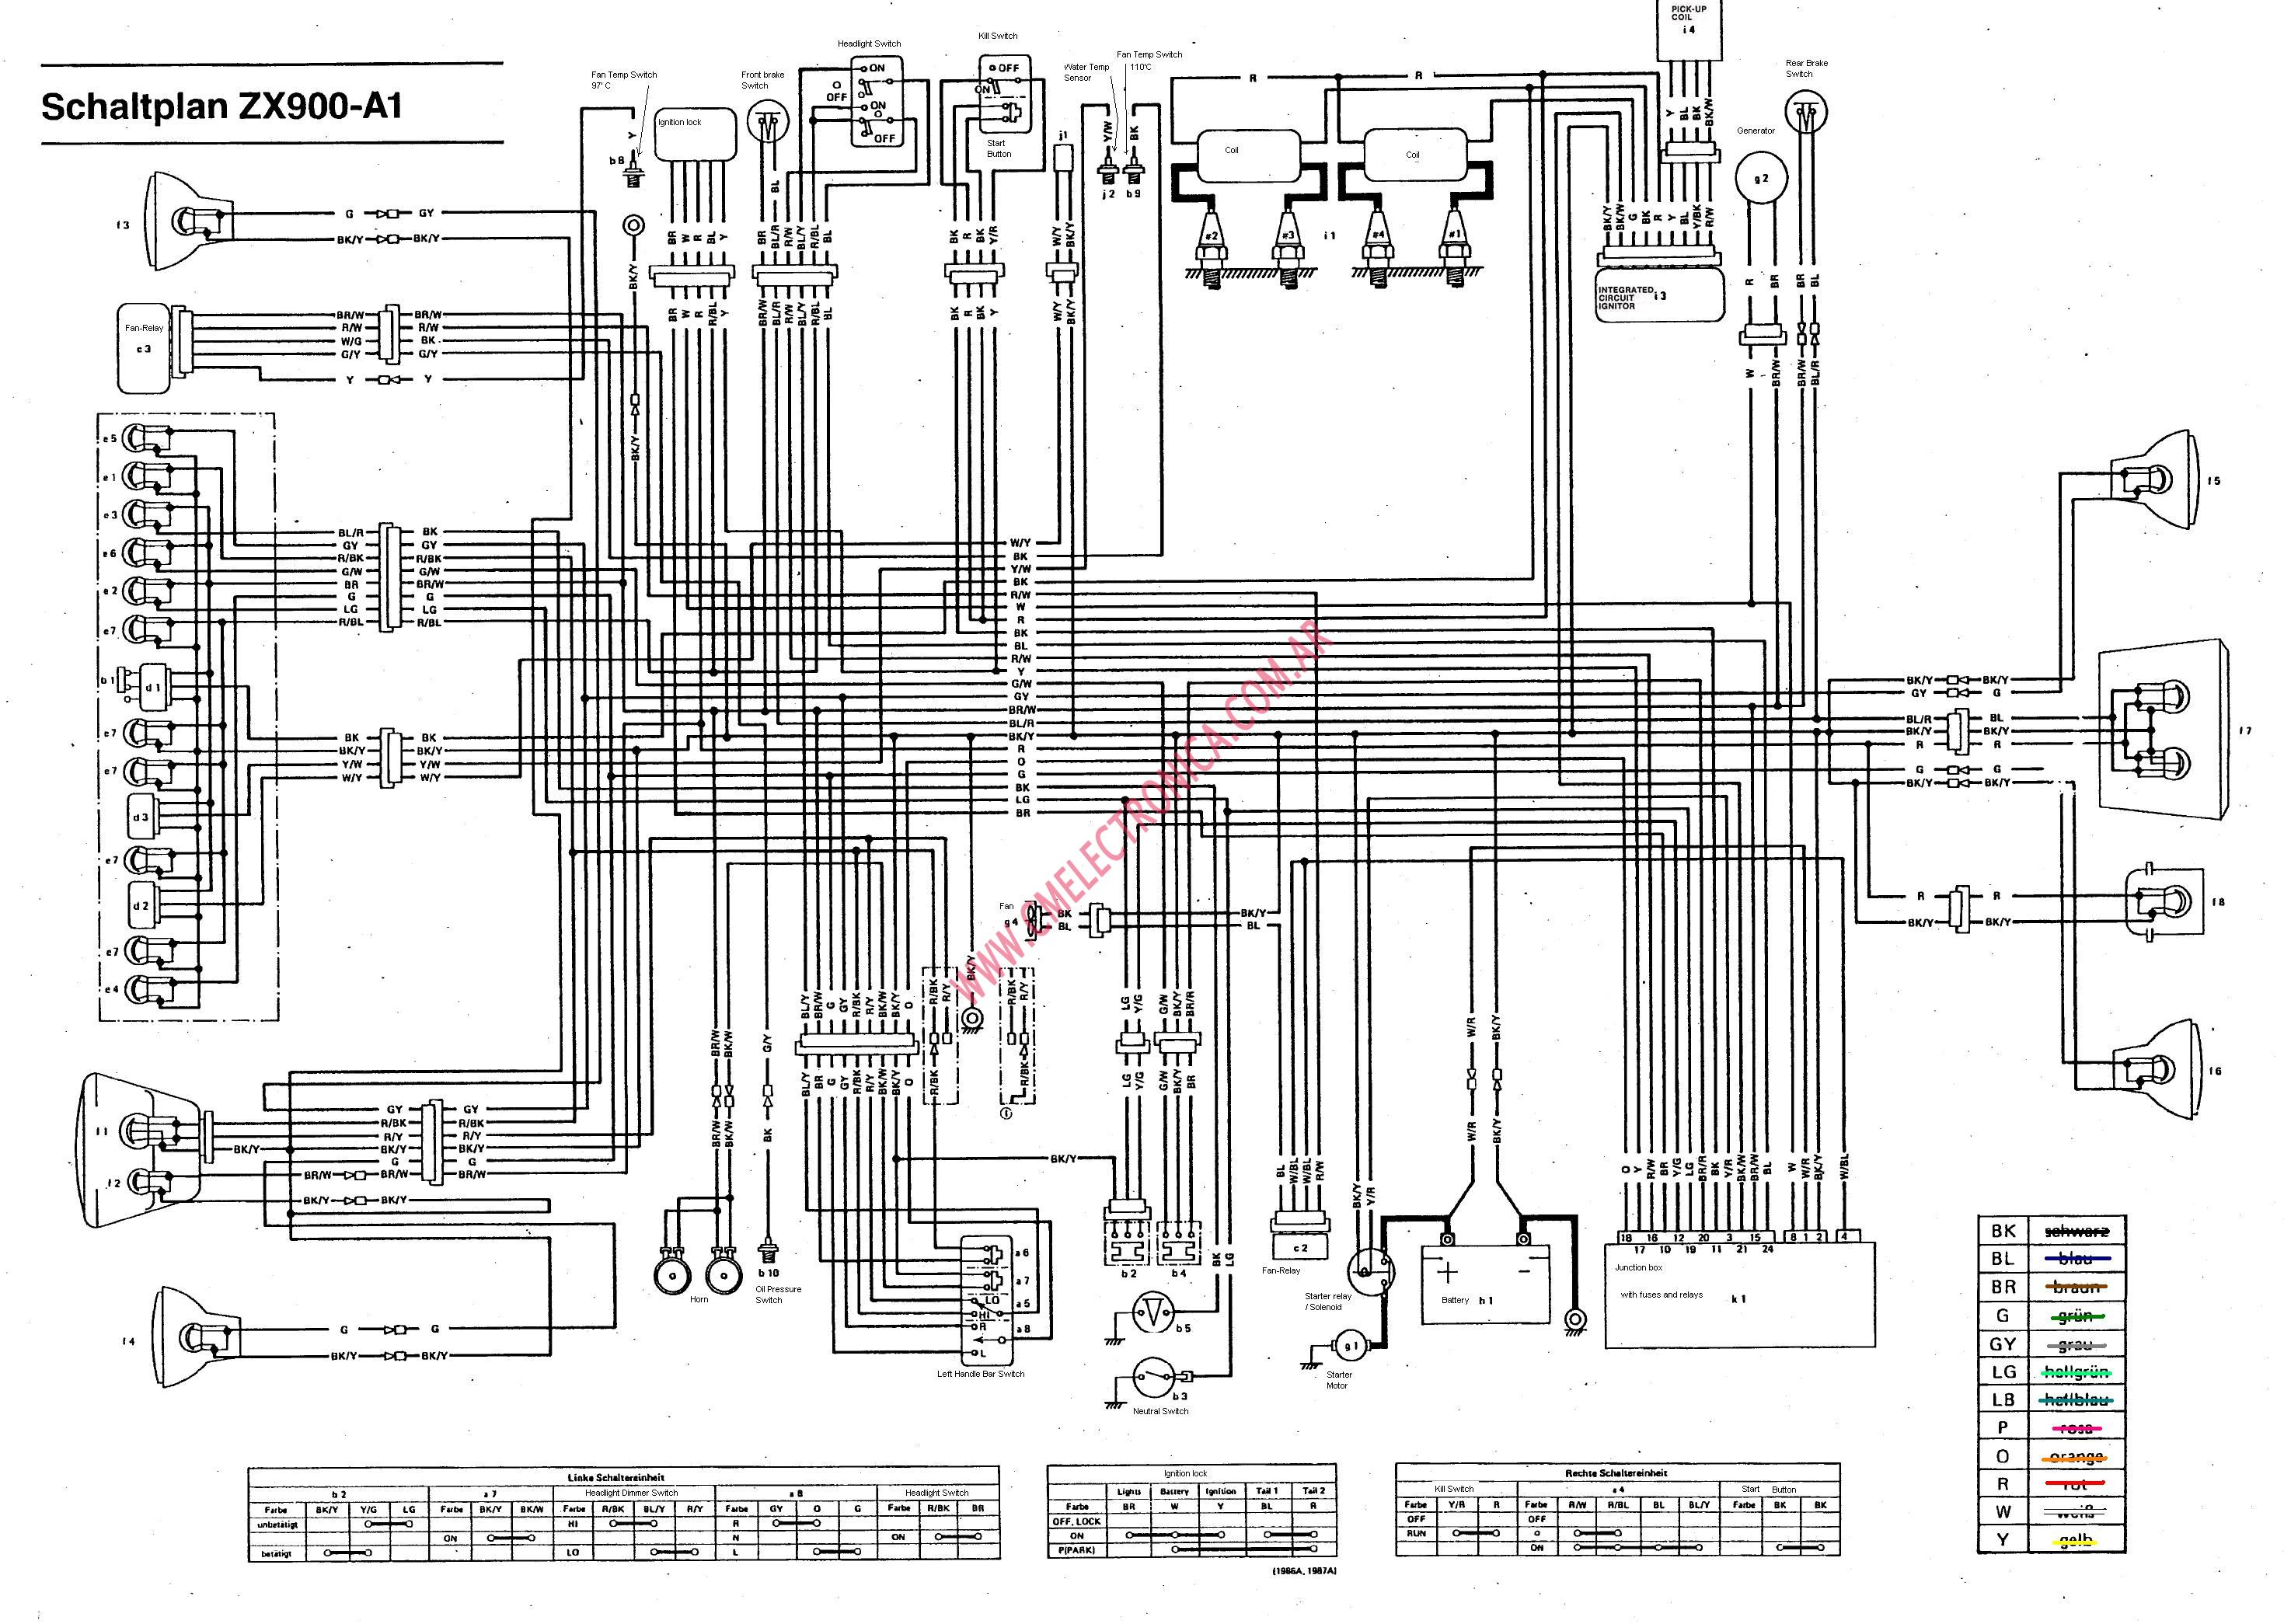 DIAGRAM] Kawasaki Gpz 1100 Wiring Diagram FULL Version HD Quality Wiring  Diagram - CREATIVERSEWIRINGPDF.ALBATROSCHAMBRESDHOTES.FRWiring And Fuse Database